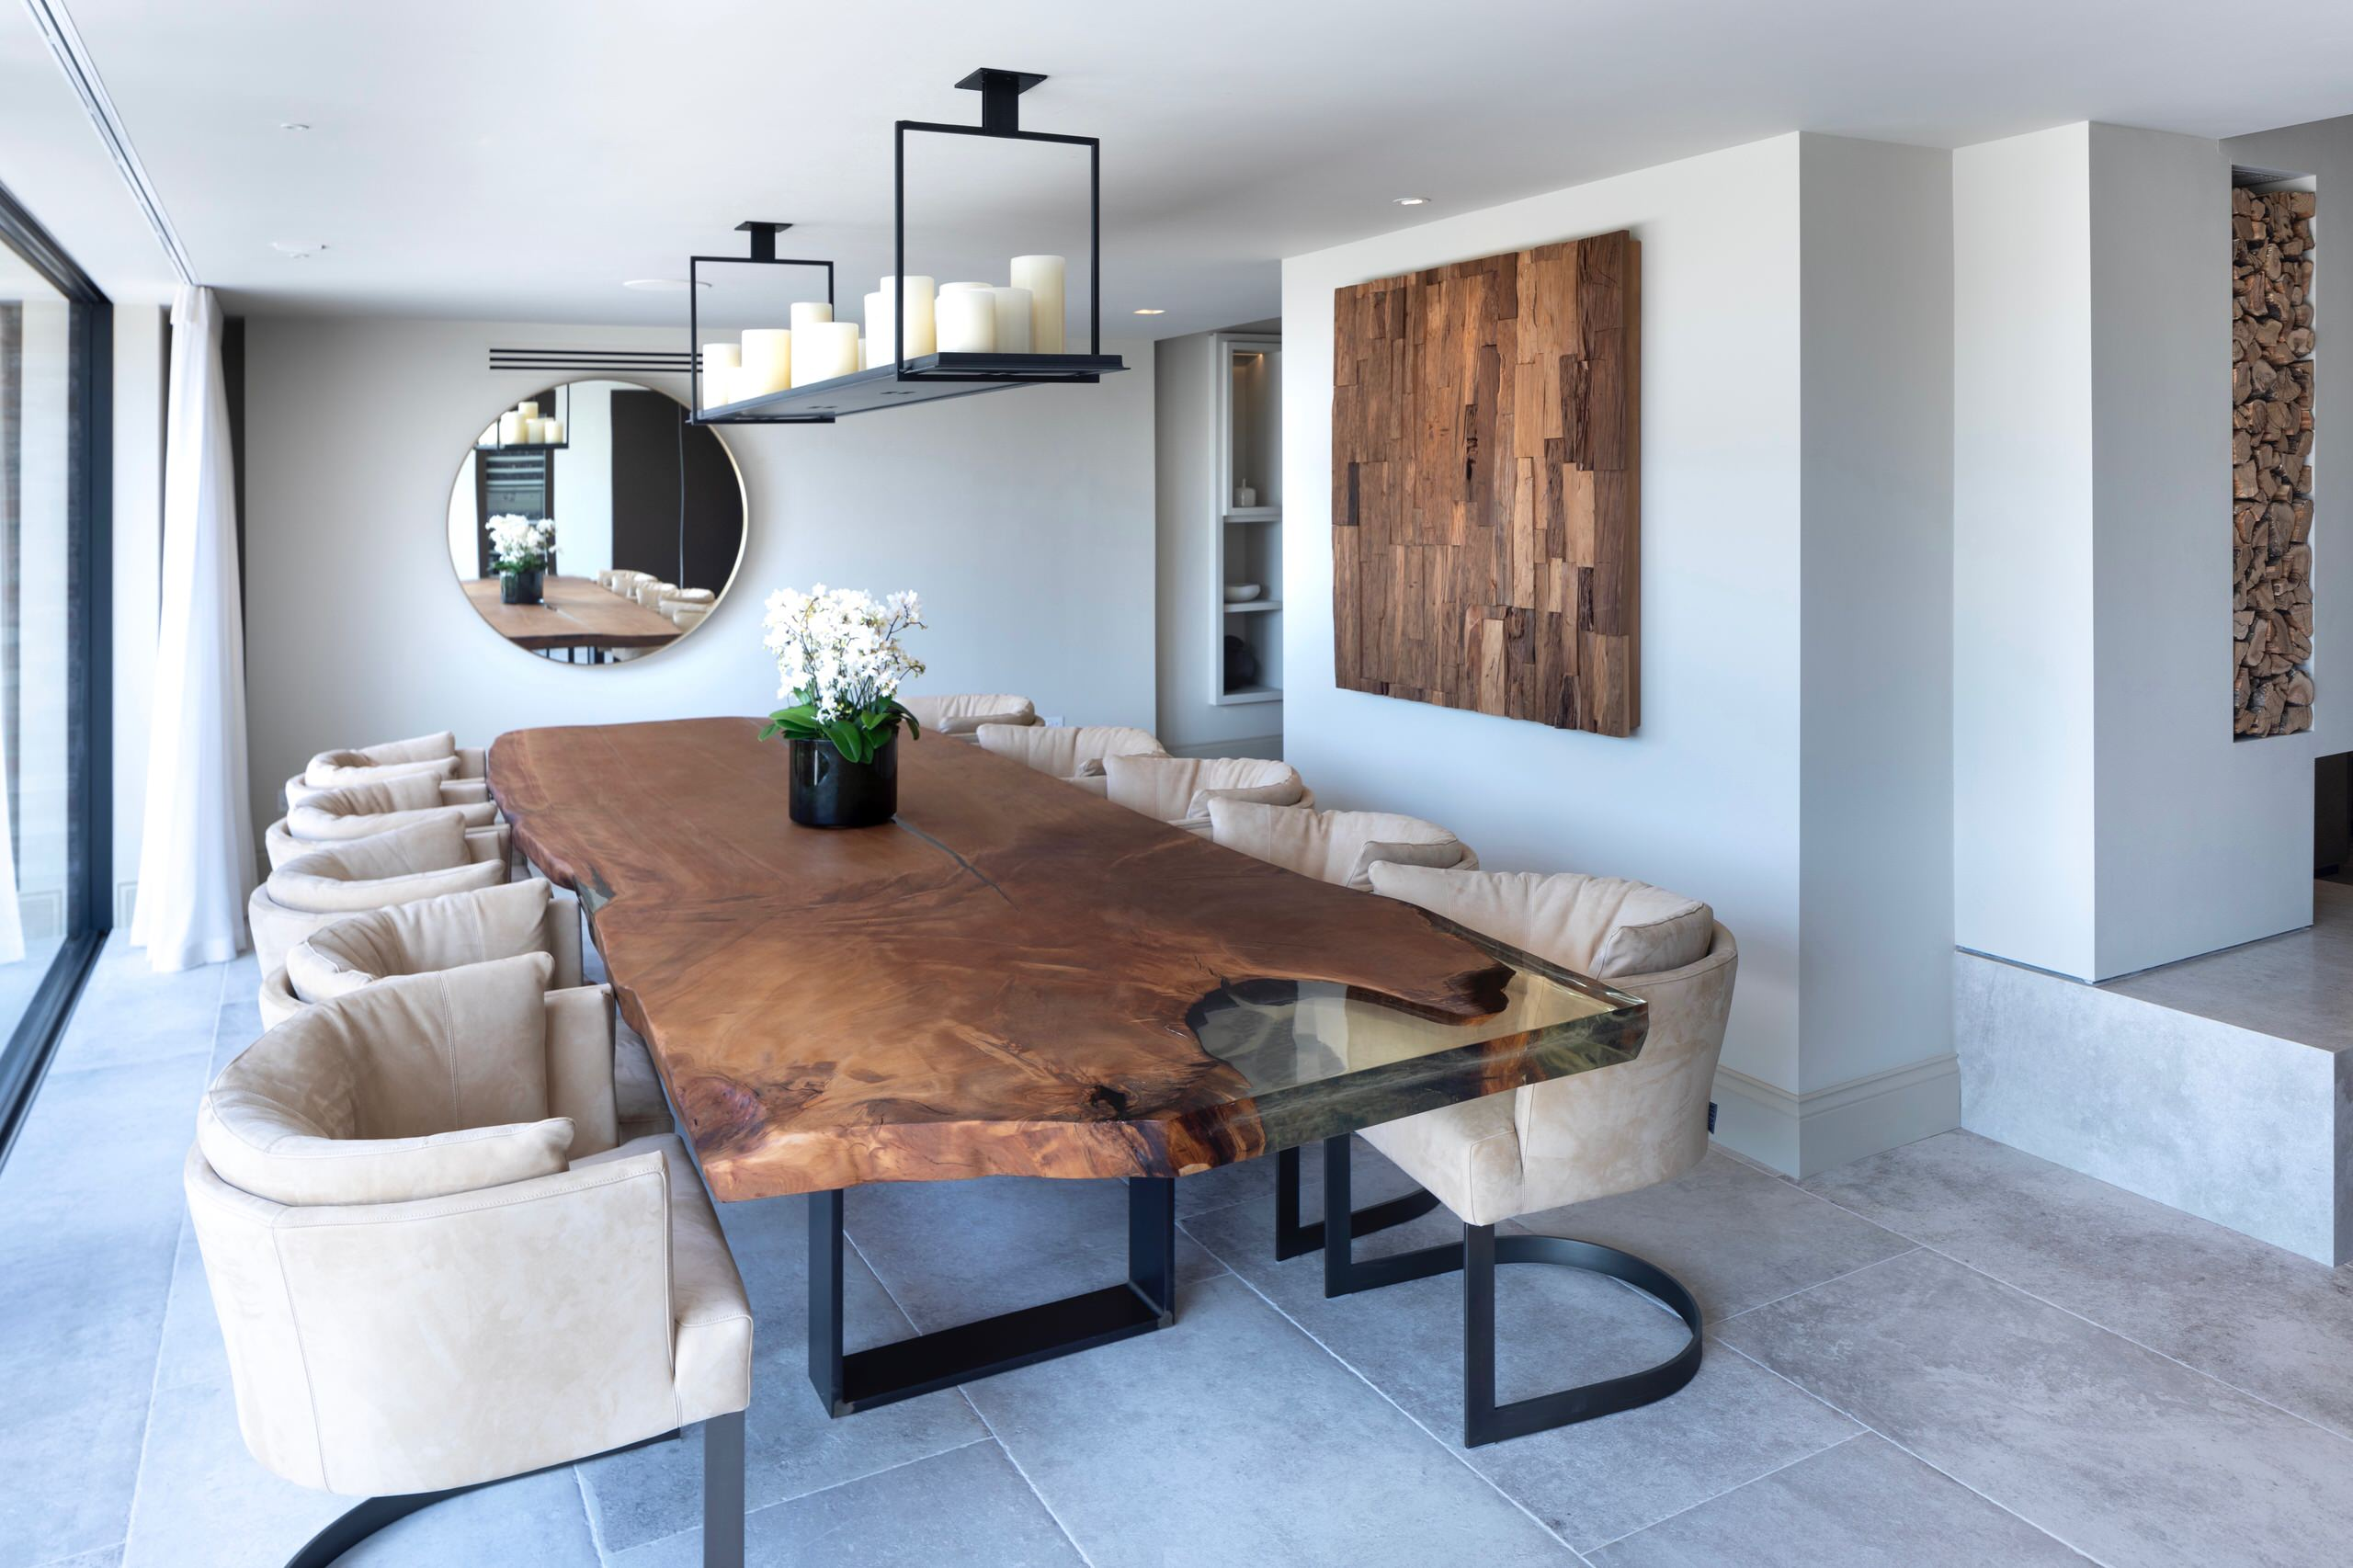 75 Beautiful Ceramic Tile Dining Room Pictures Ideas March 2021 Houzz